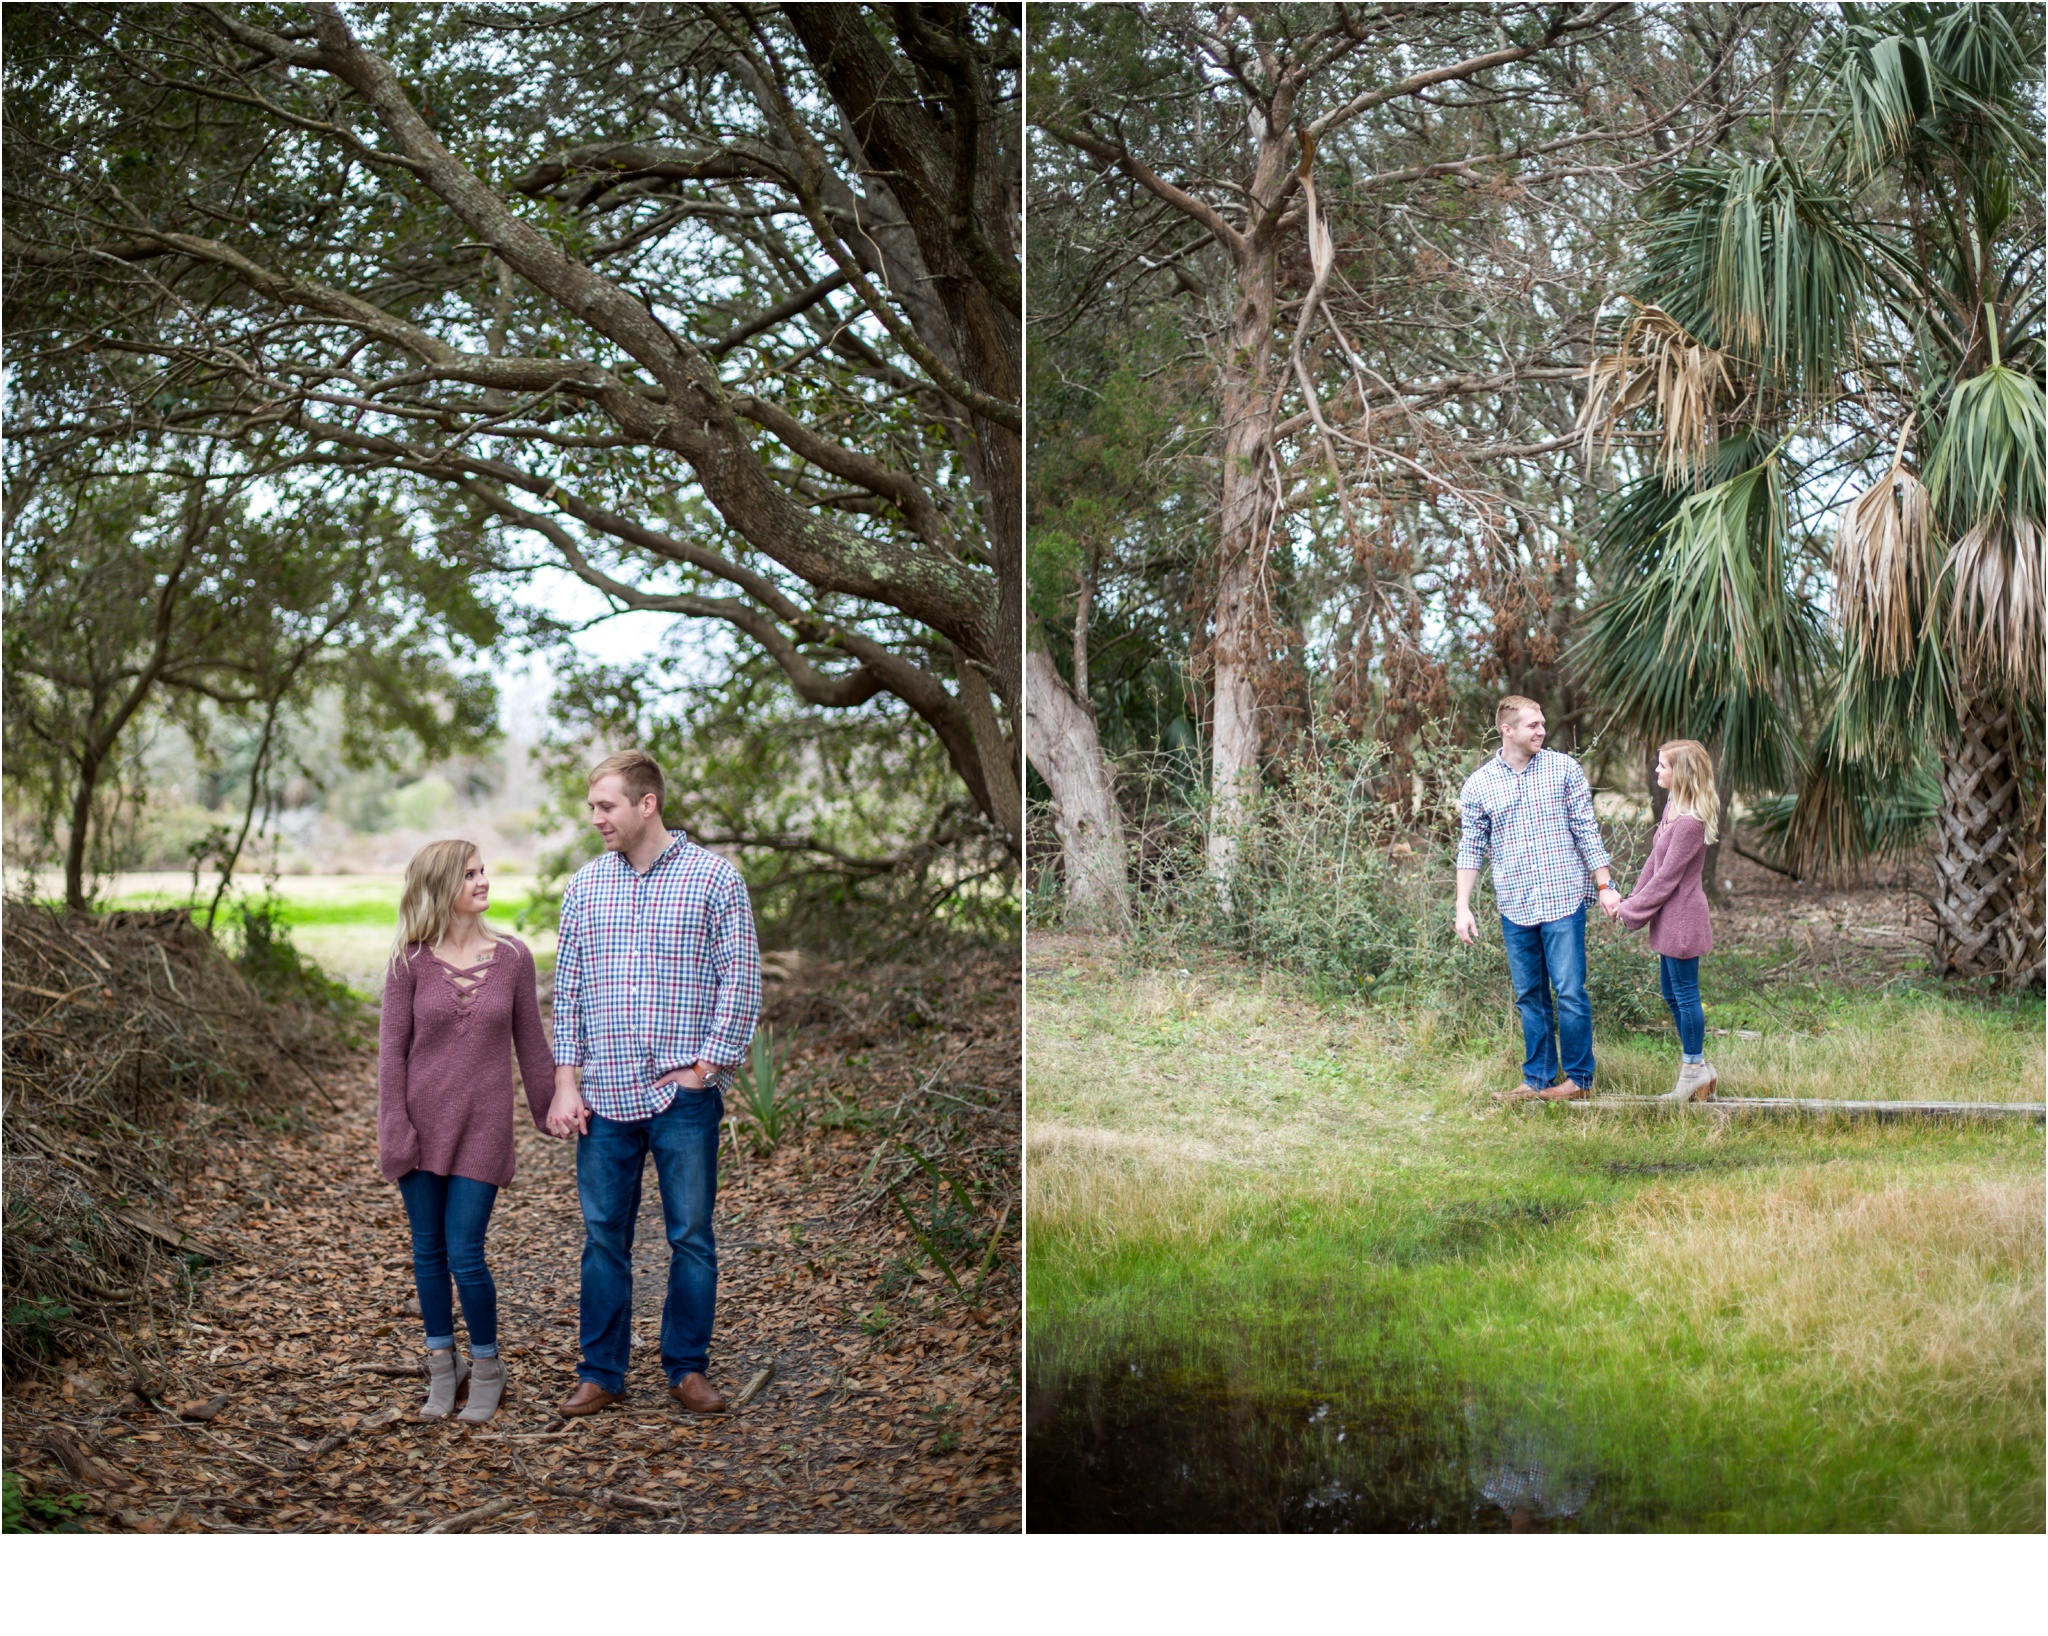 Rainey_Gregg_Photography_St._Simons_Island_Georgia_California_Wedding_Portrait_Photography_0602.jpg